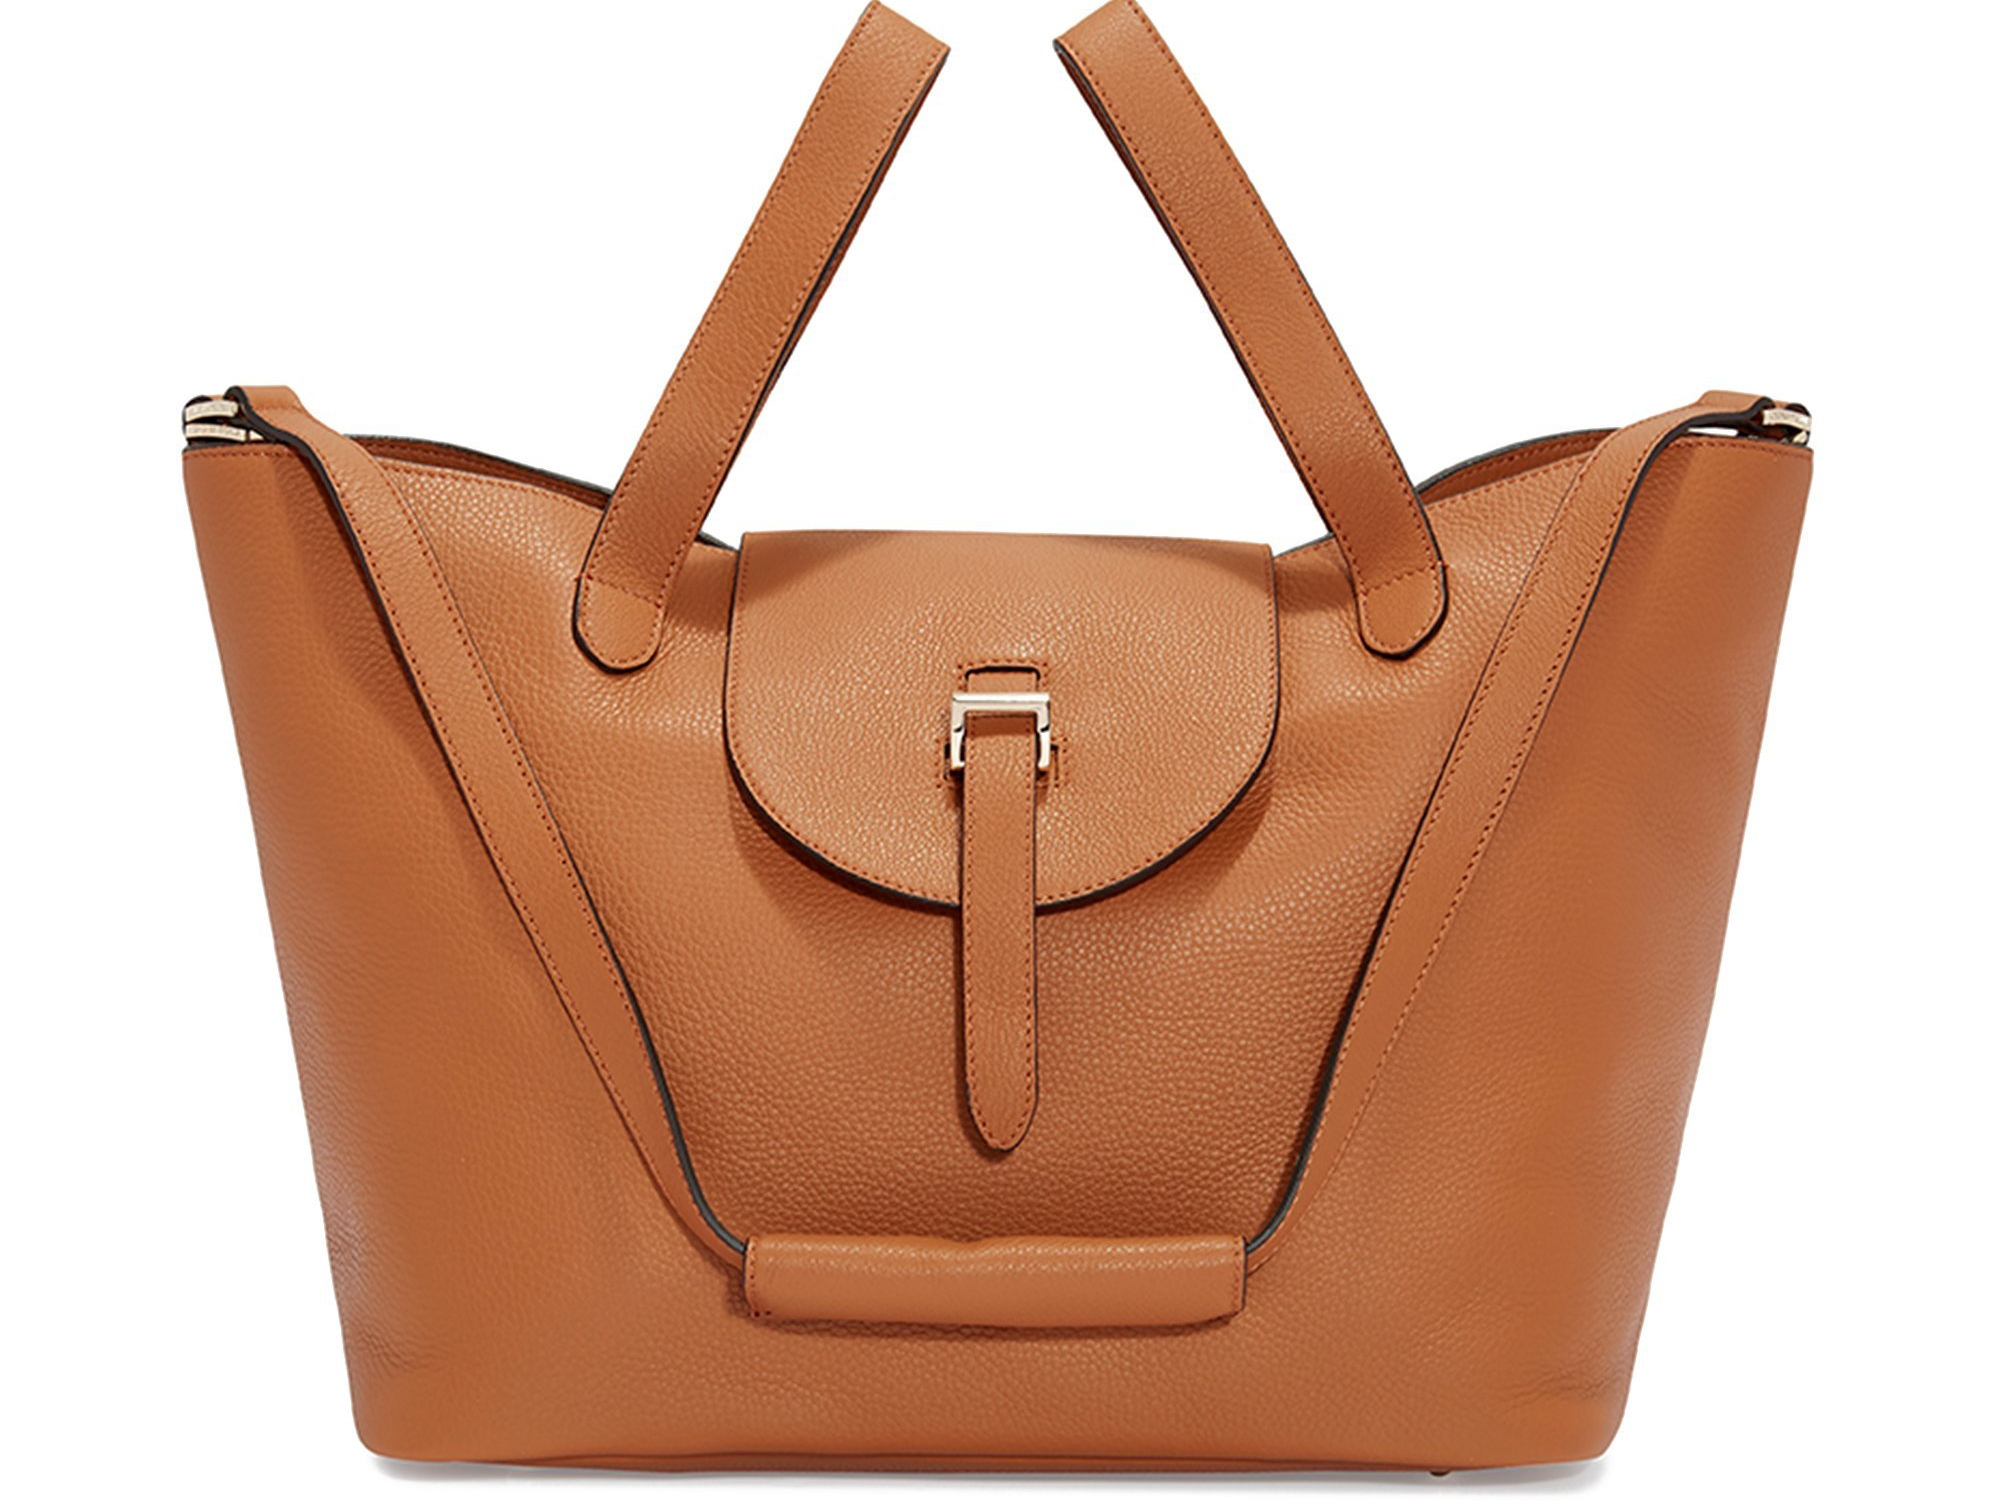 25% off Bags